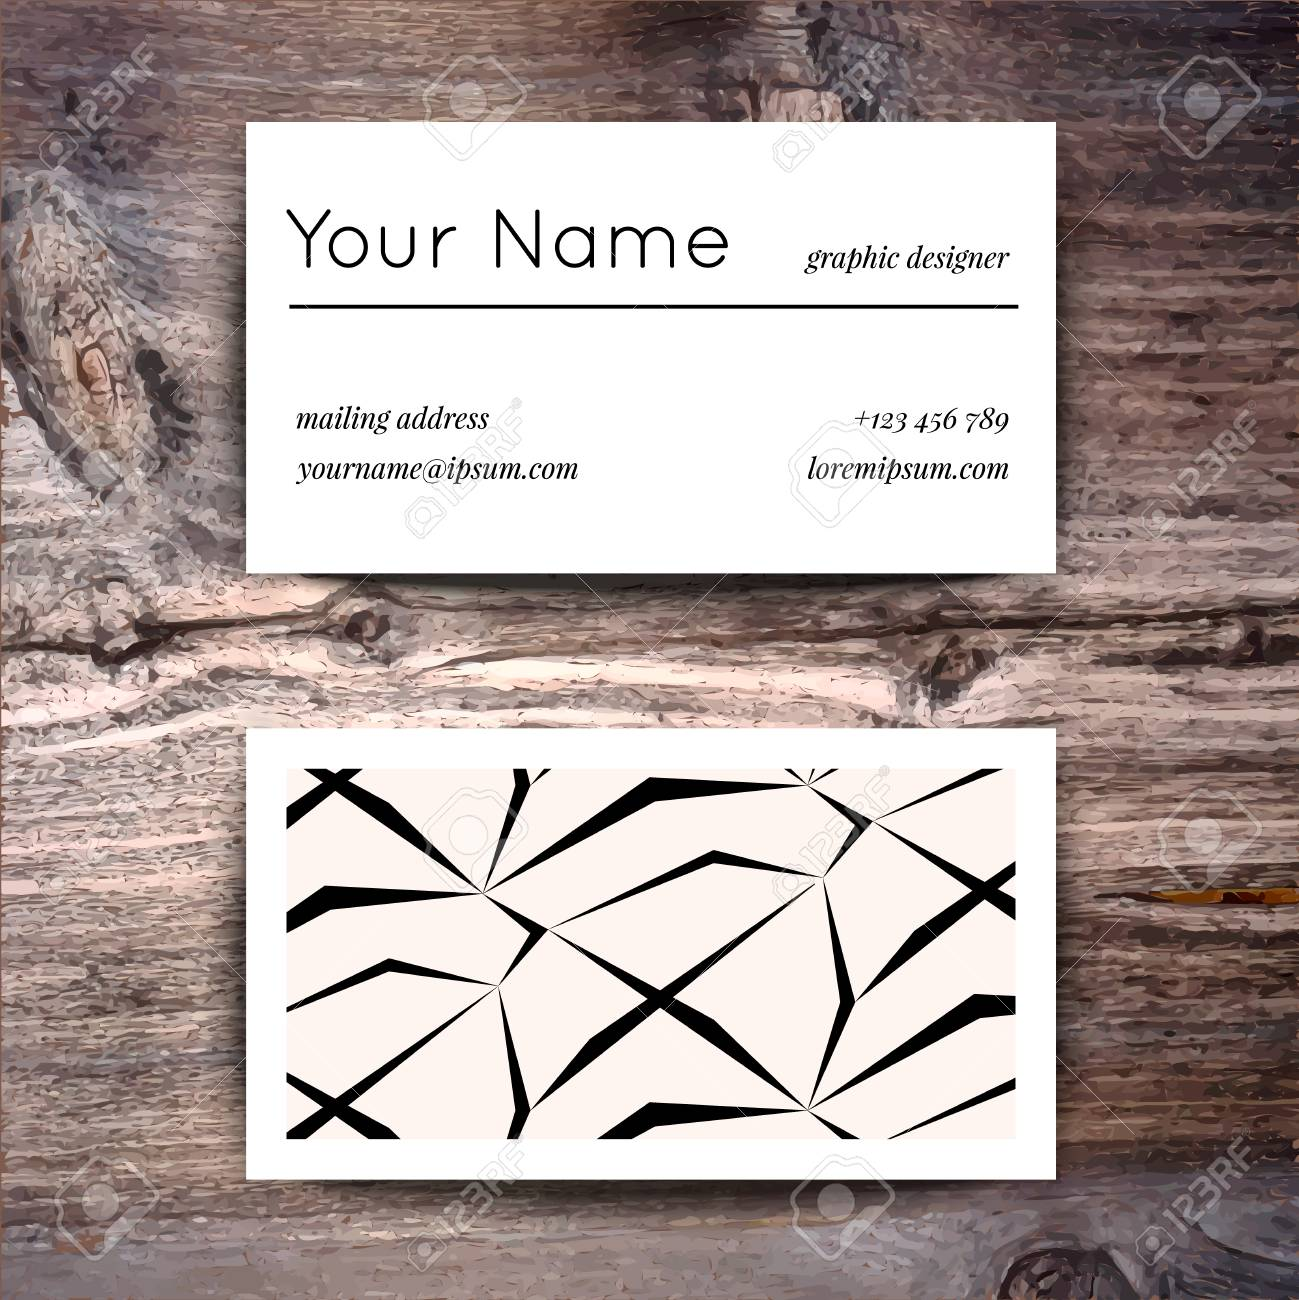 Business Card Template With Creative White And Black Retro Pattern ...